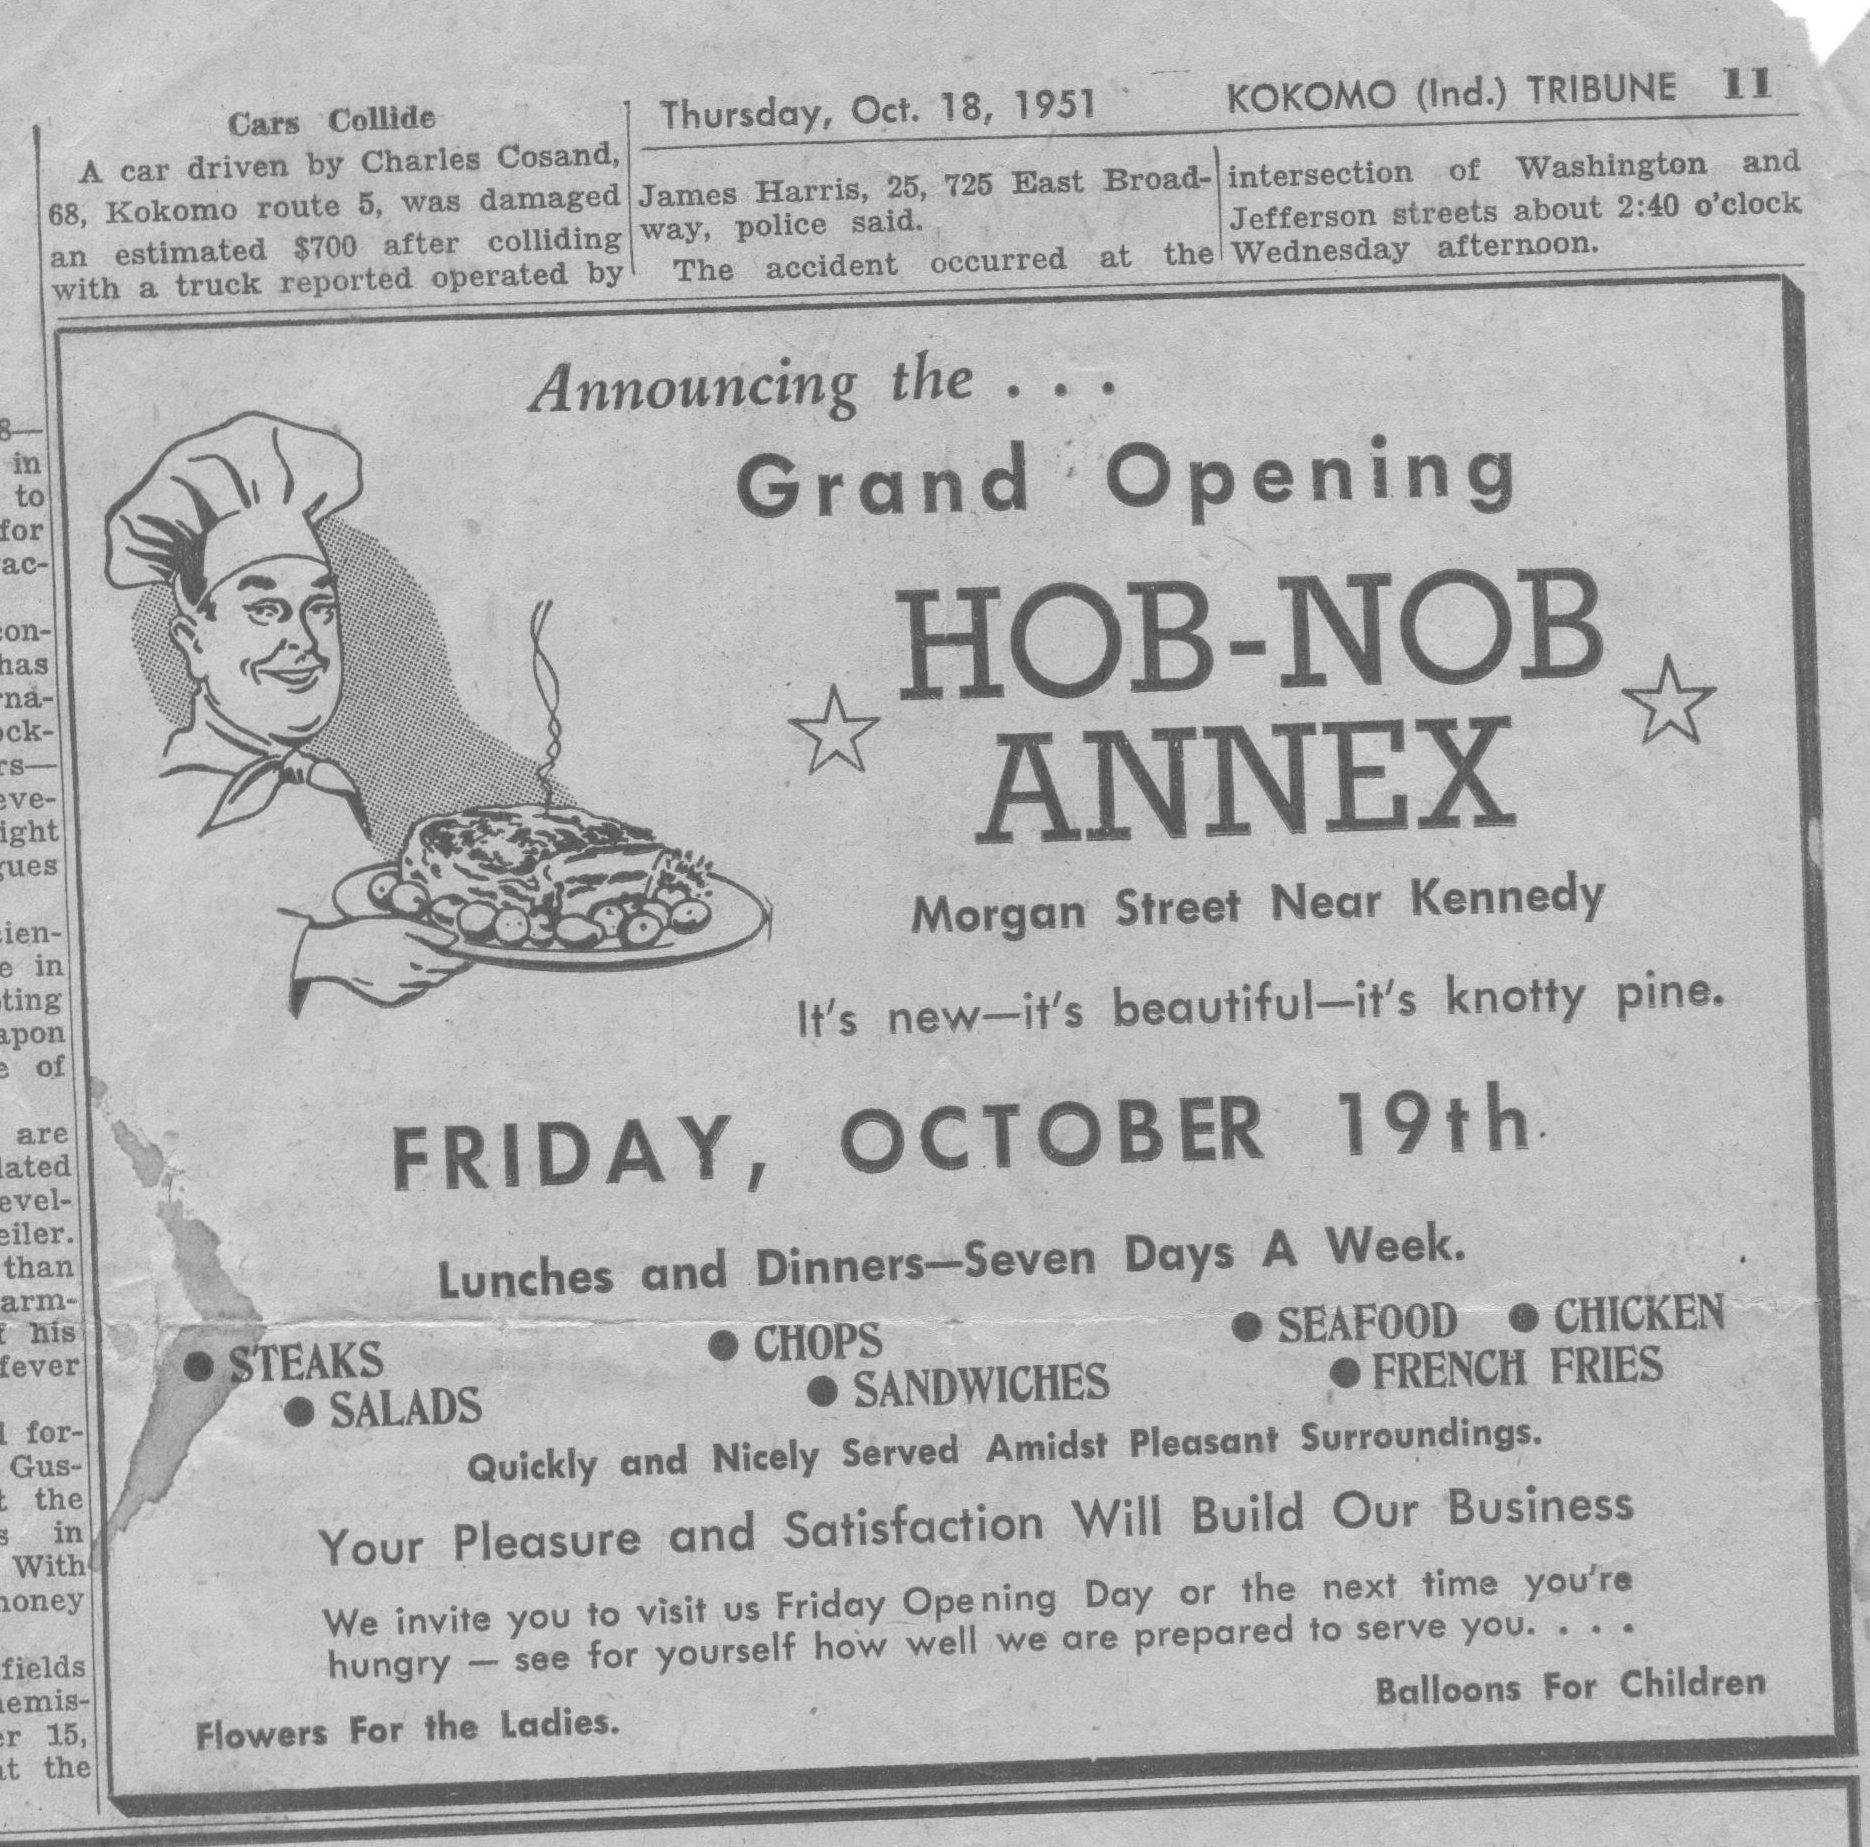 Hob Nob Annex Grand Opening Ad from Tribune 001